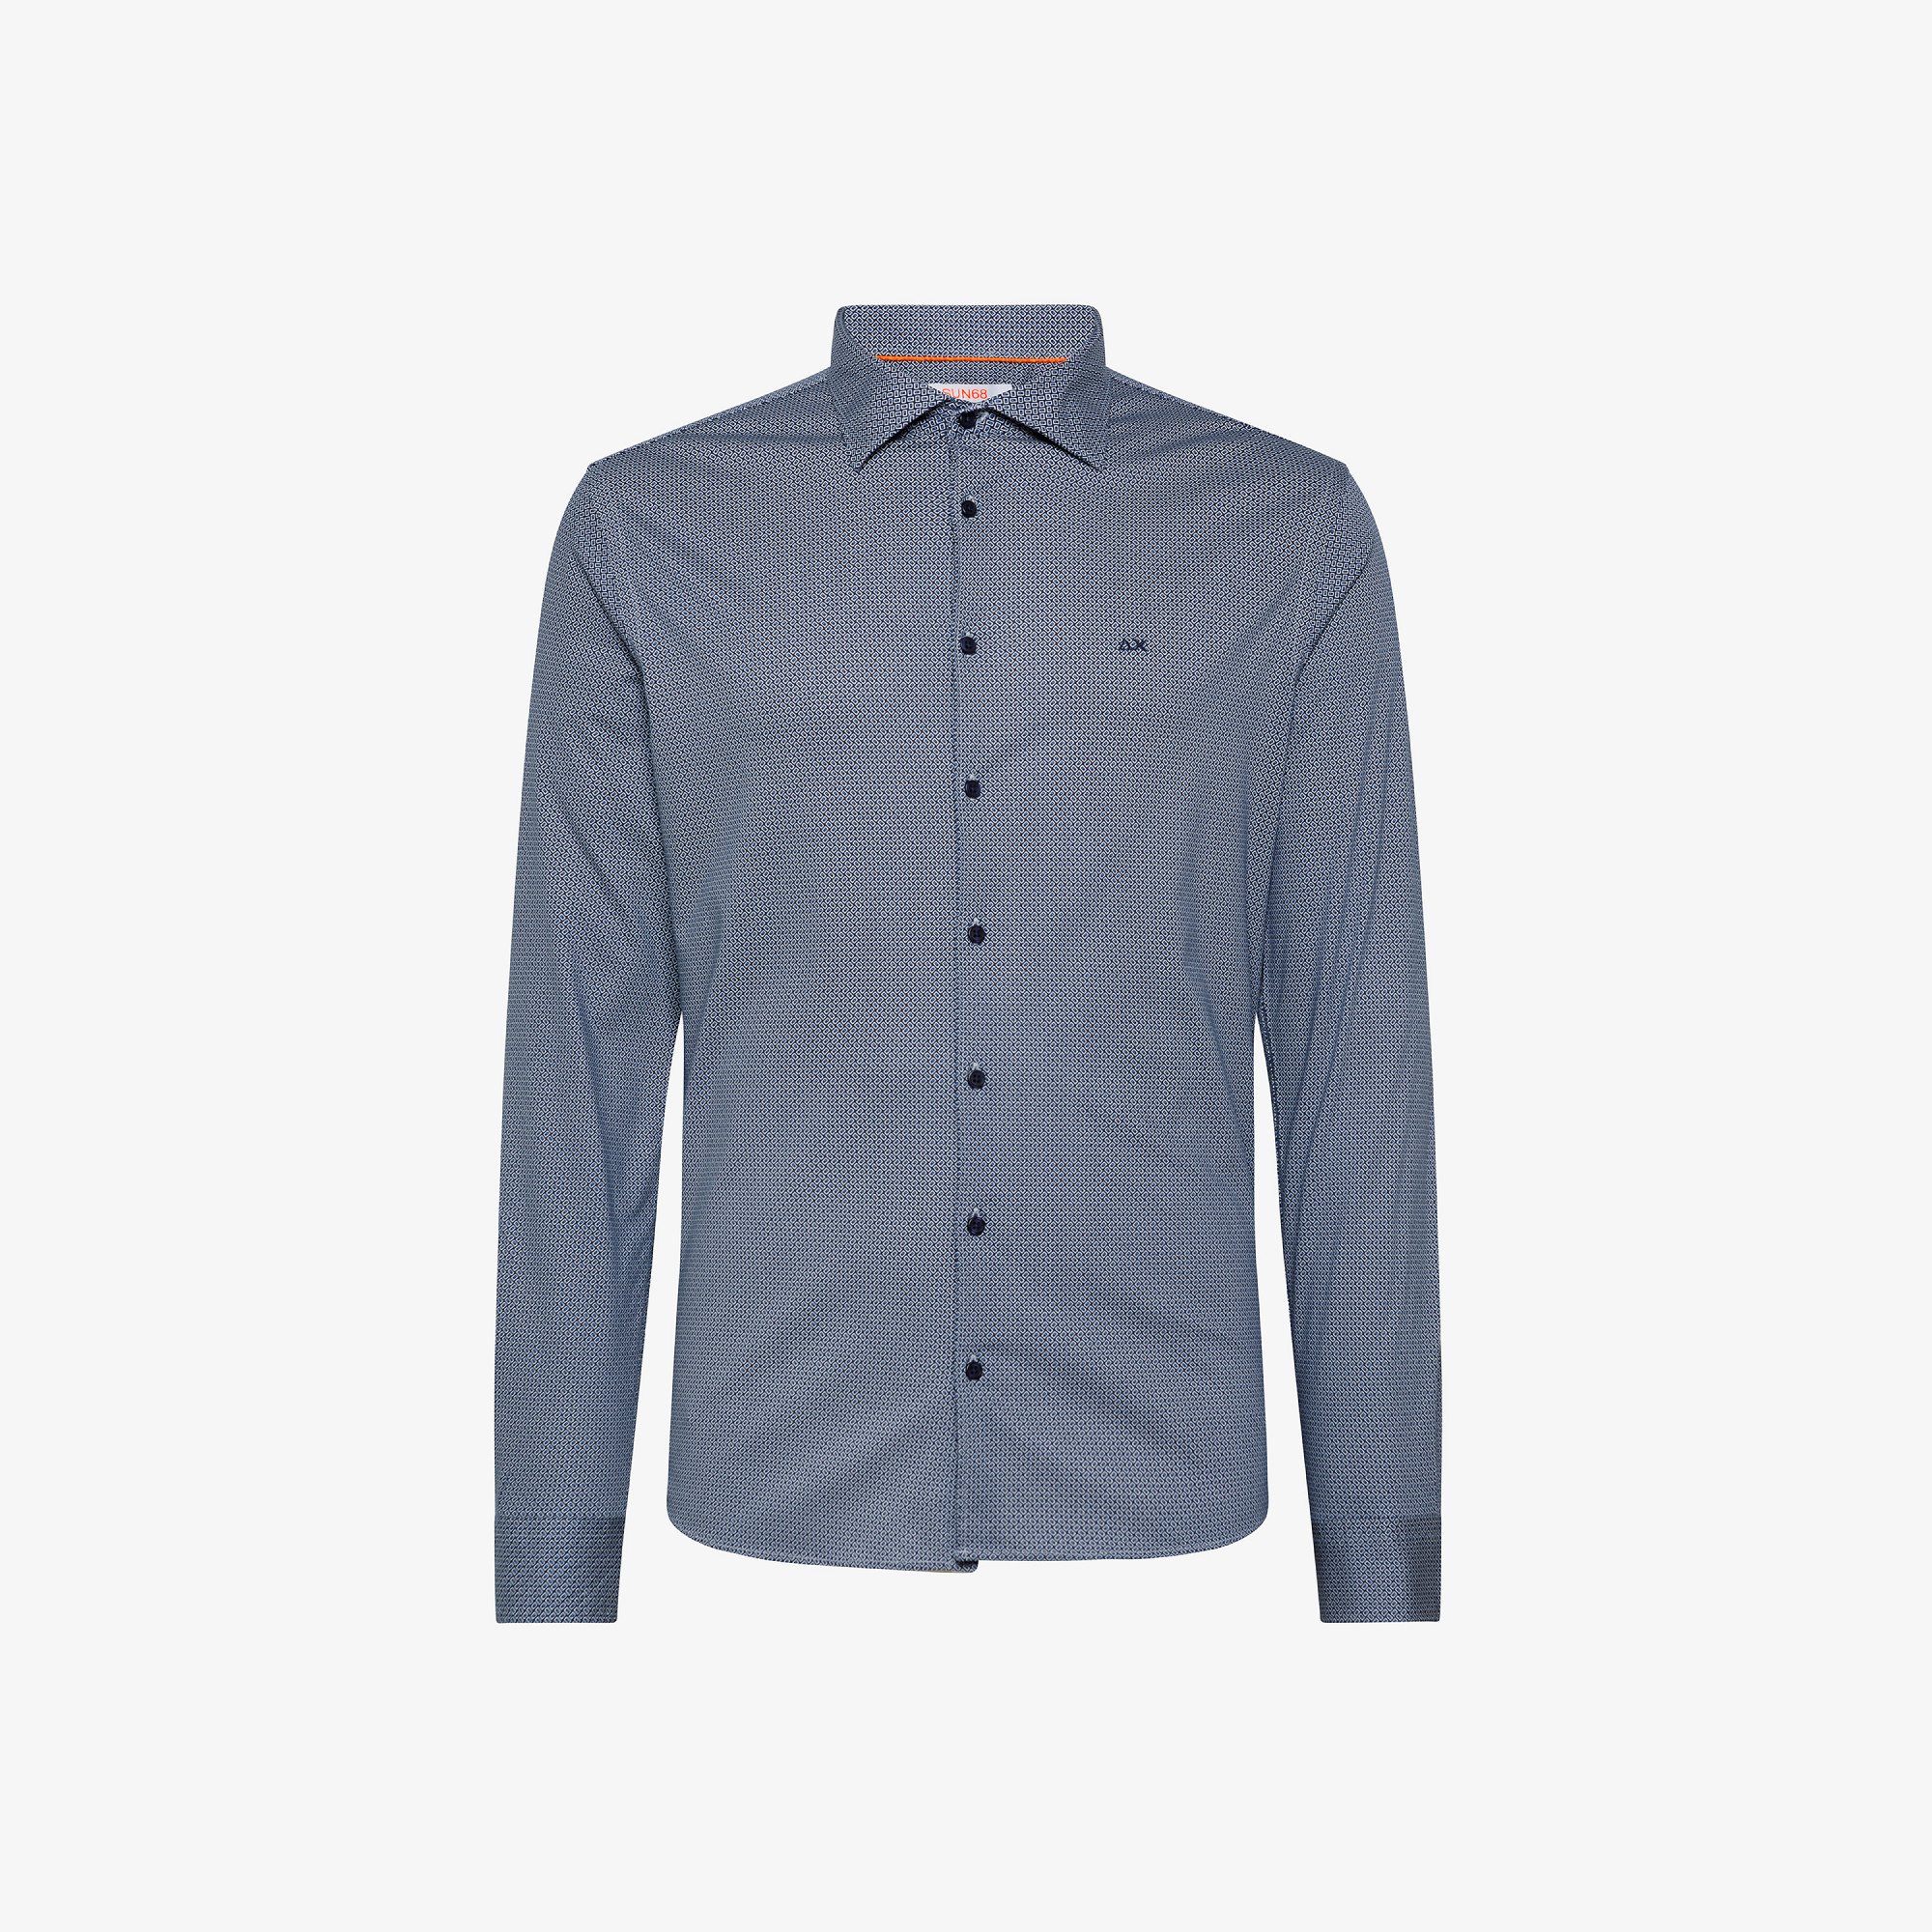 SHIRT JERSEY FANCY FRENCH COLLAR L/S NAVY BLUE/BLUE